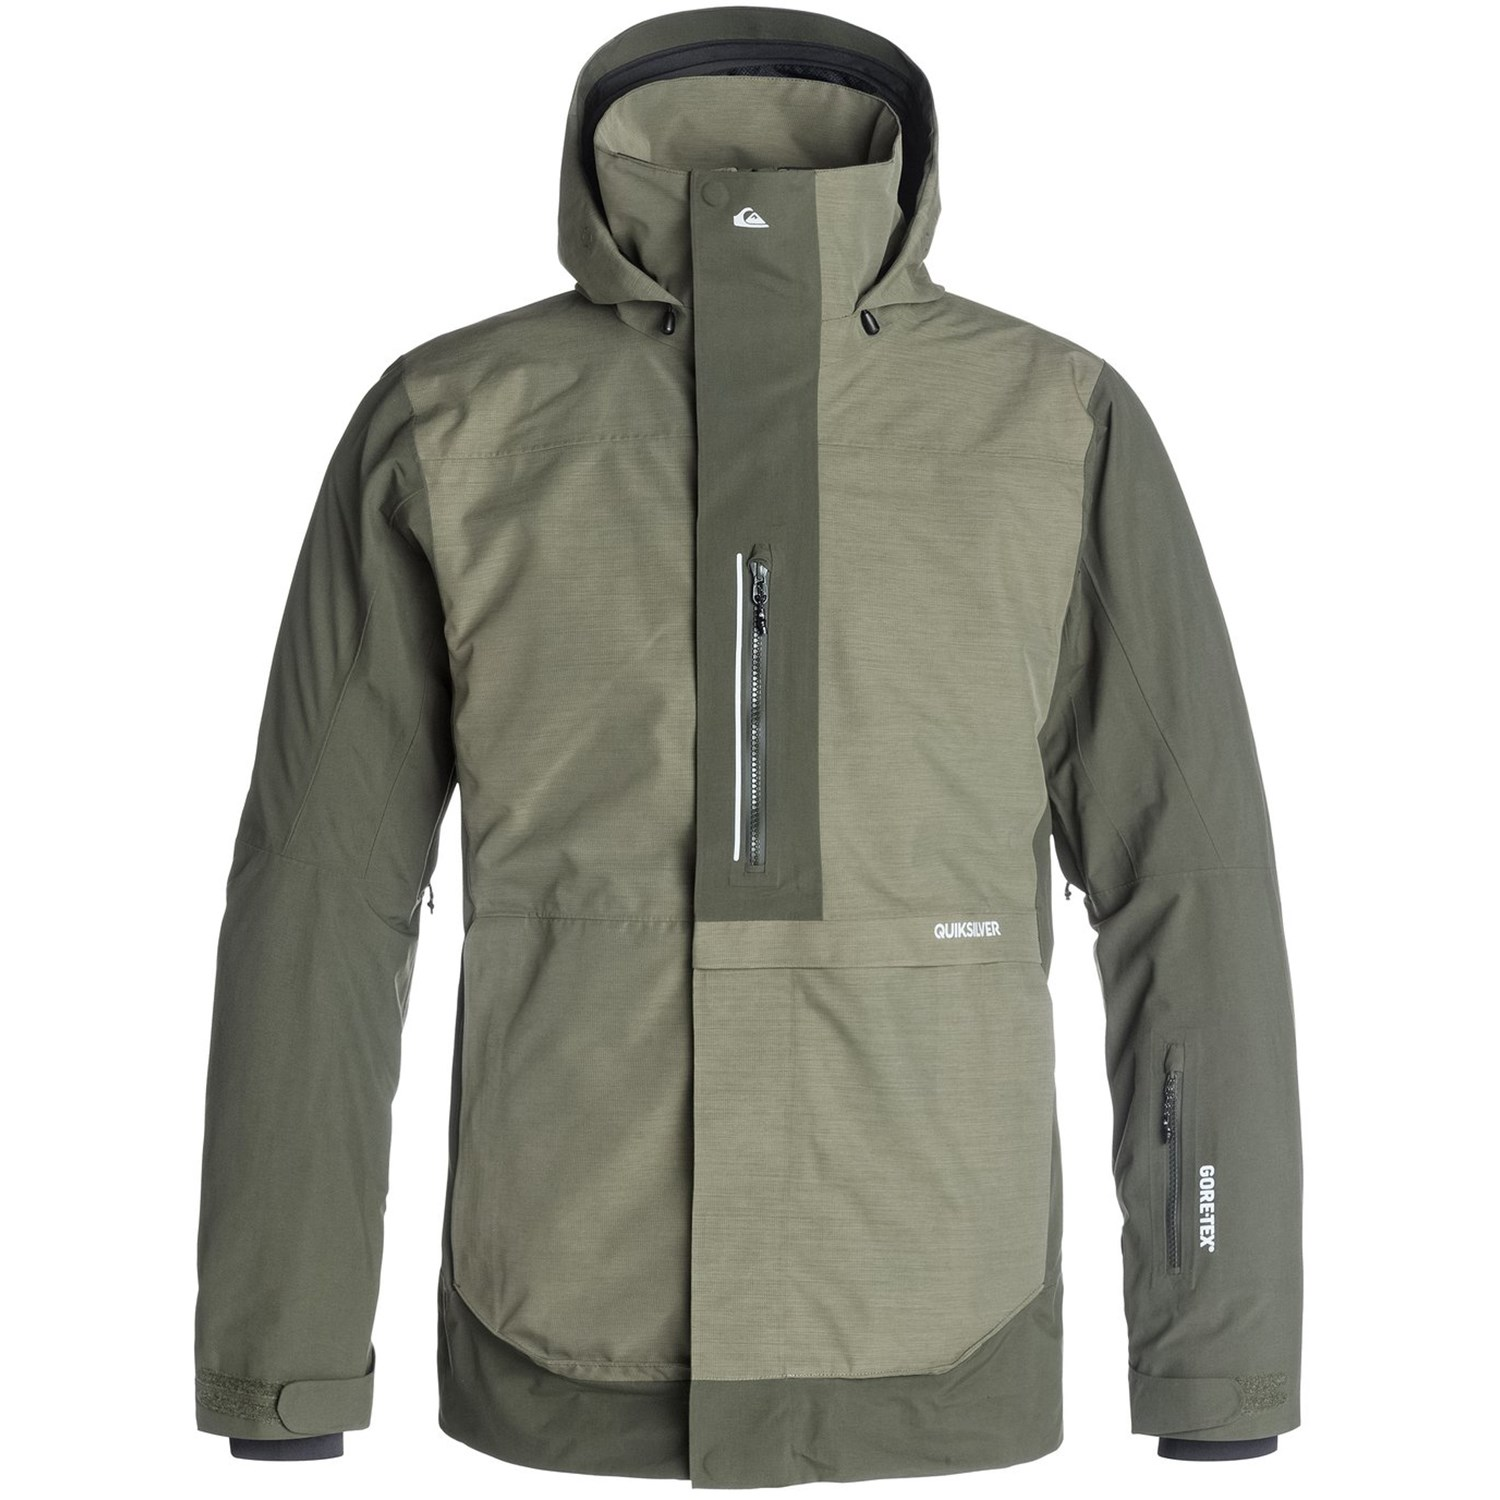 Exhibition Shell Jacket : Quiksilver tr exhibition l gore tex jacket evo